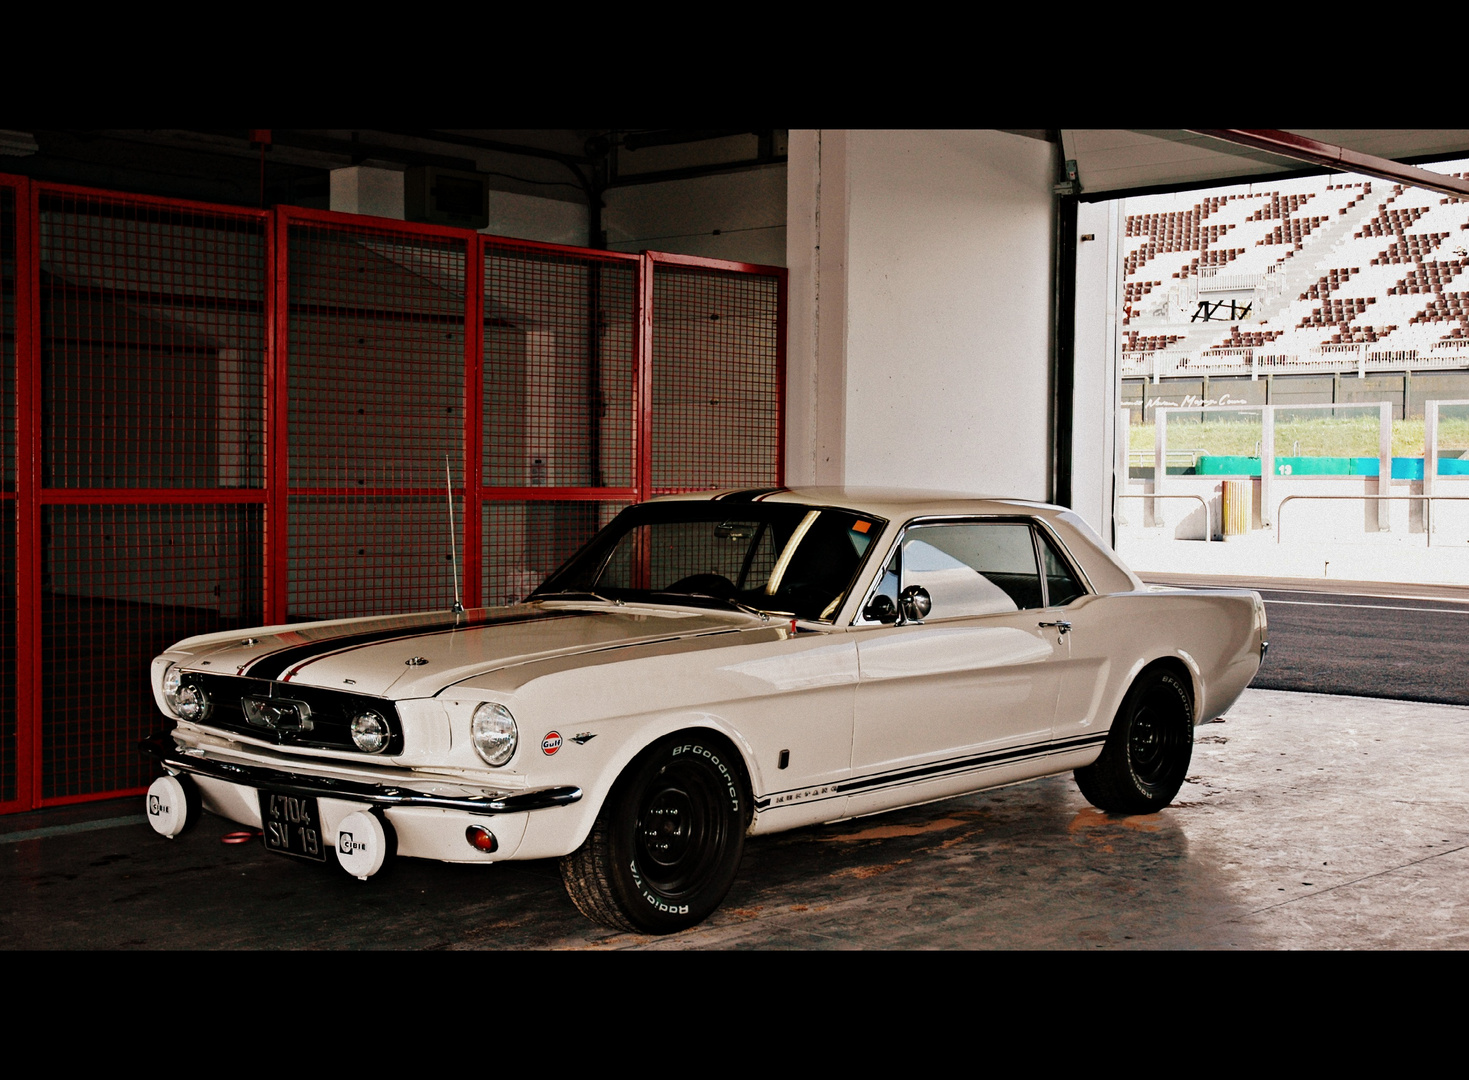 Ford Mustang - Classic Days